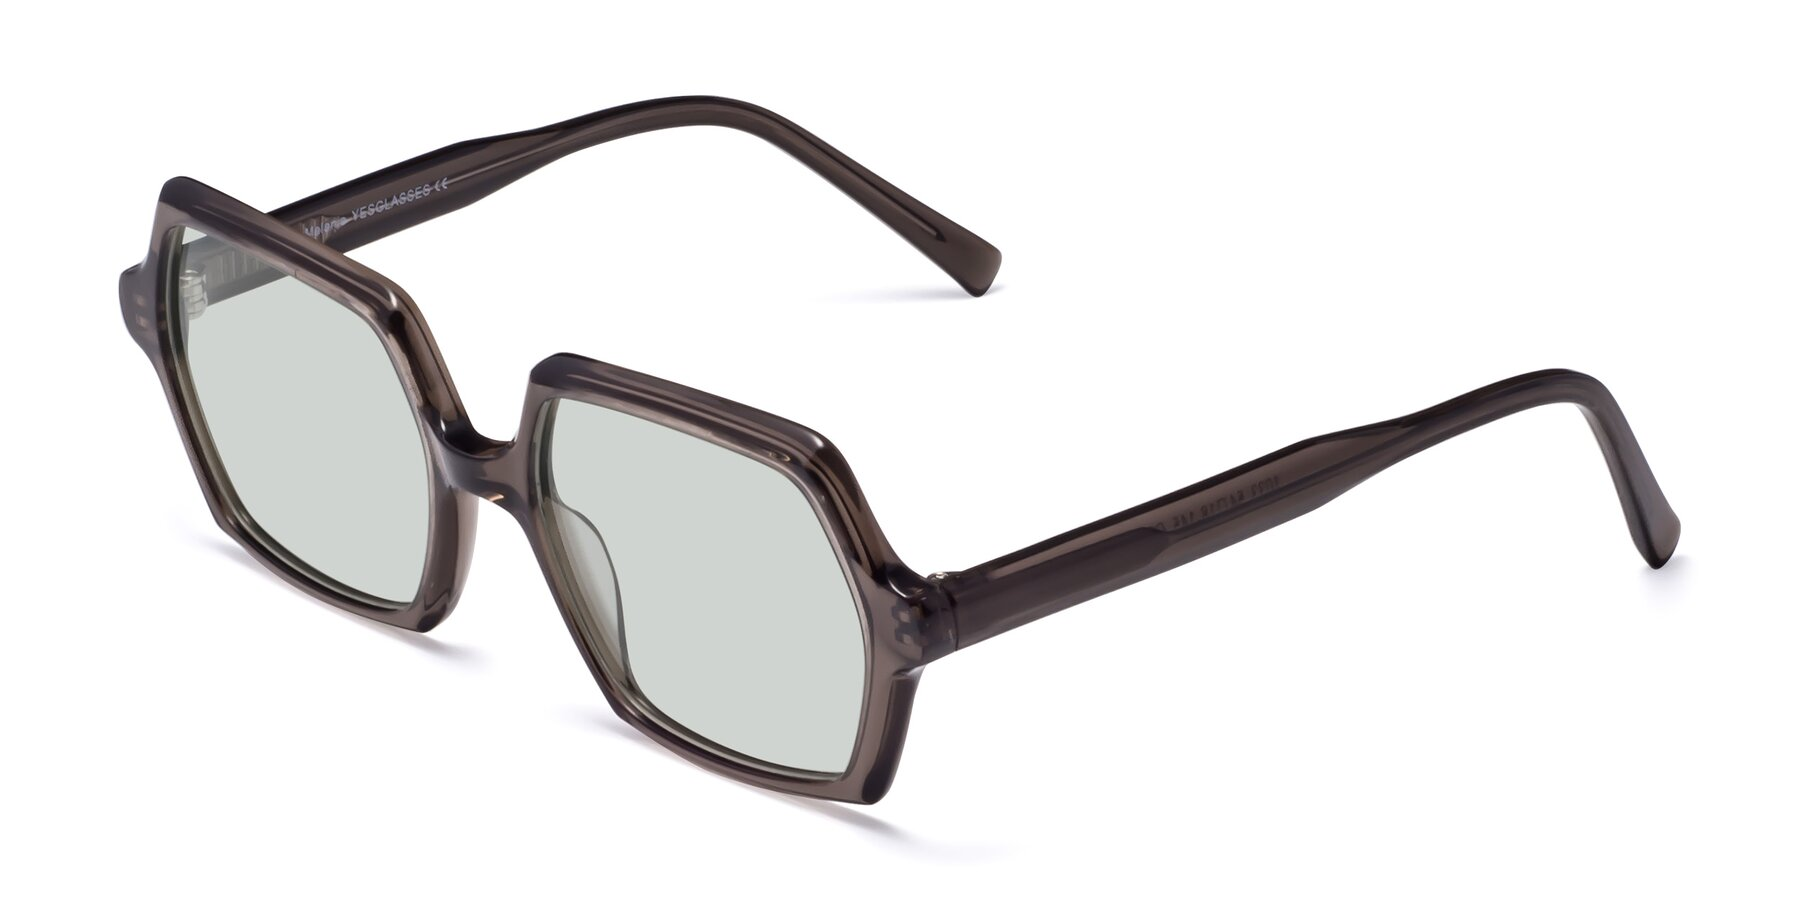 Angle of Melanie in Transparent Gray with Light Green Tinted Lenses